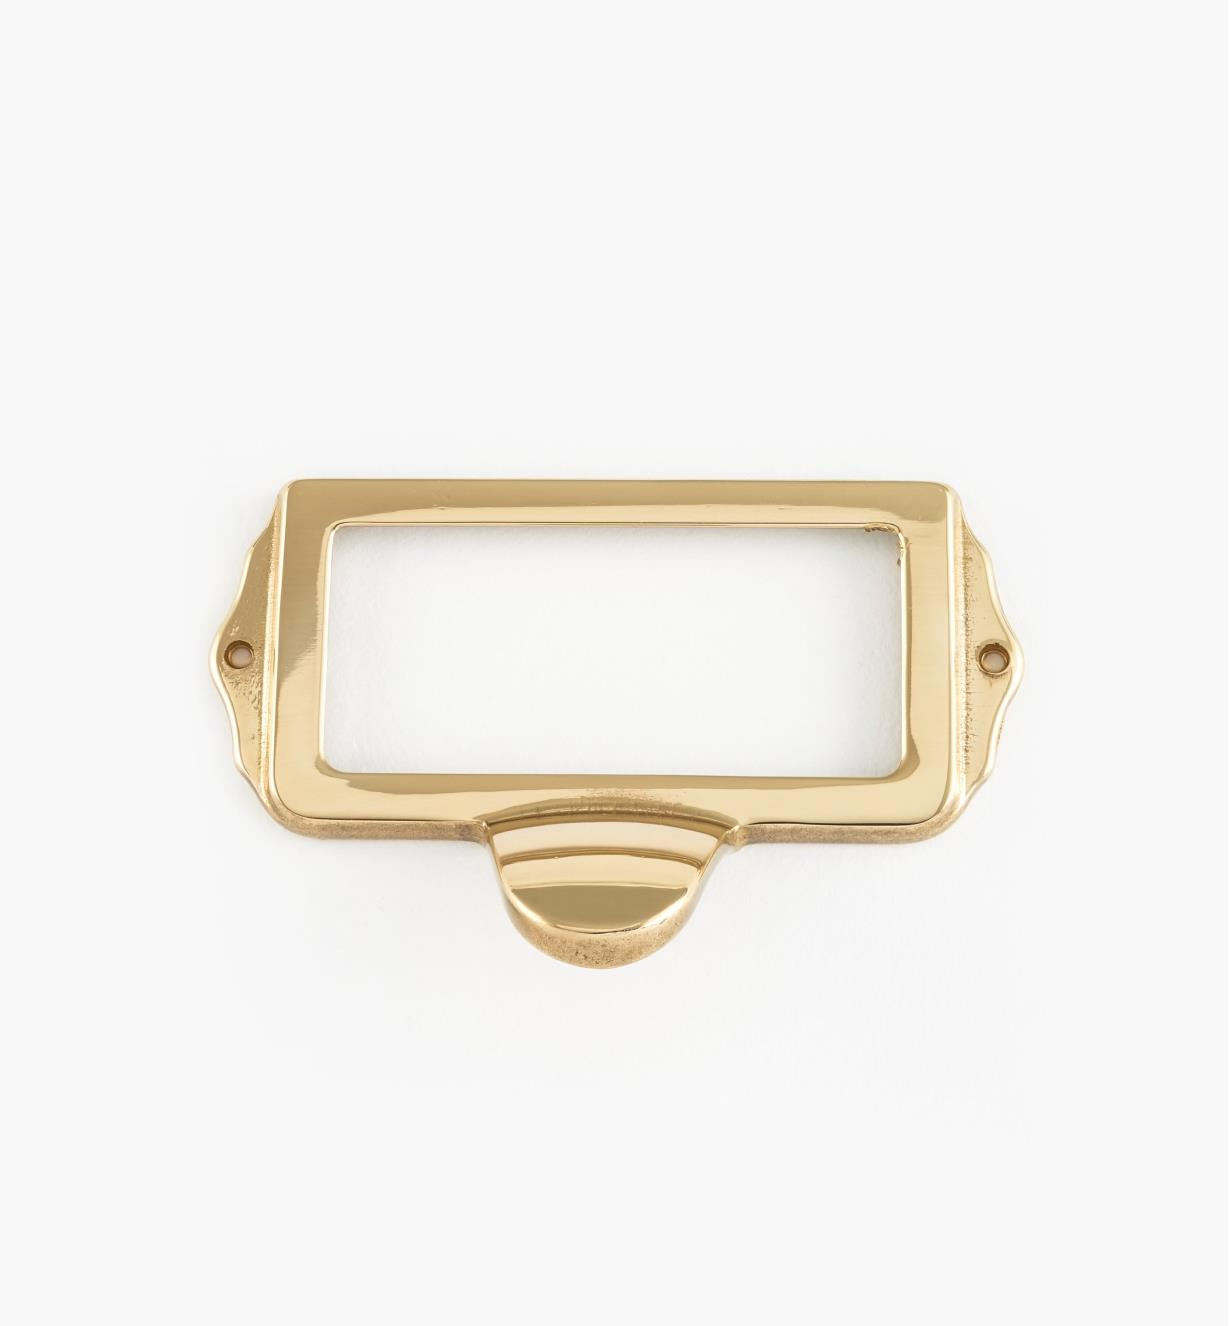 01A5753 - Polished Brass Card Frame Pull